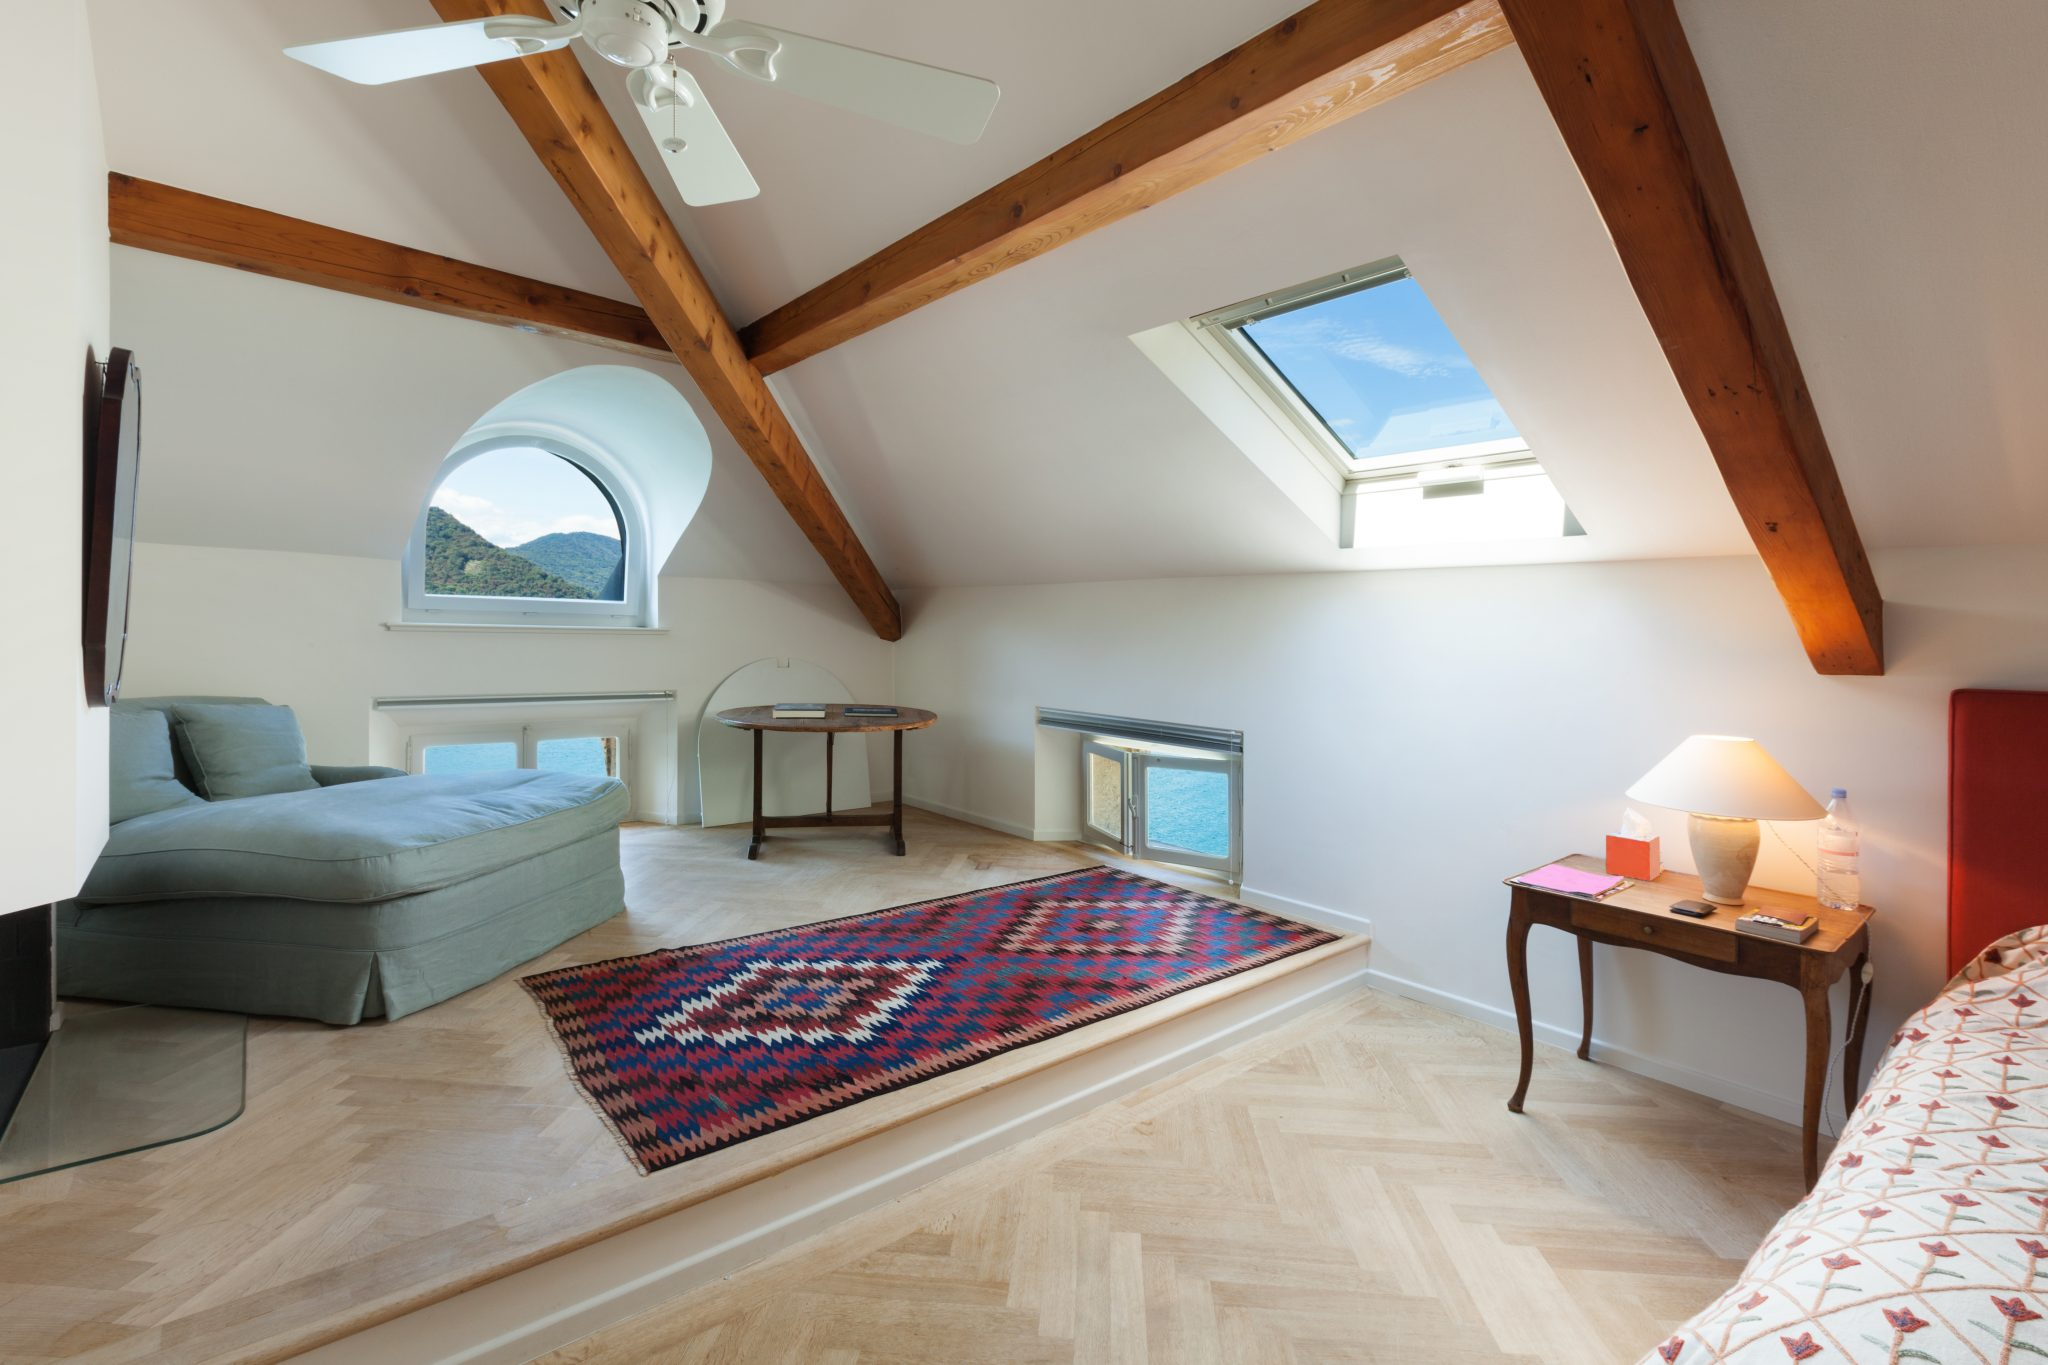 Room with roof lanterns